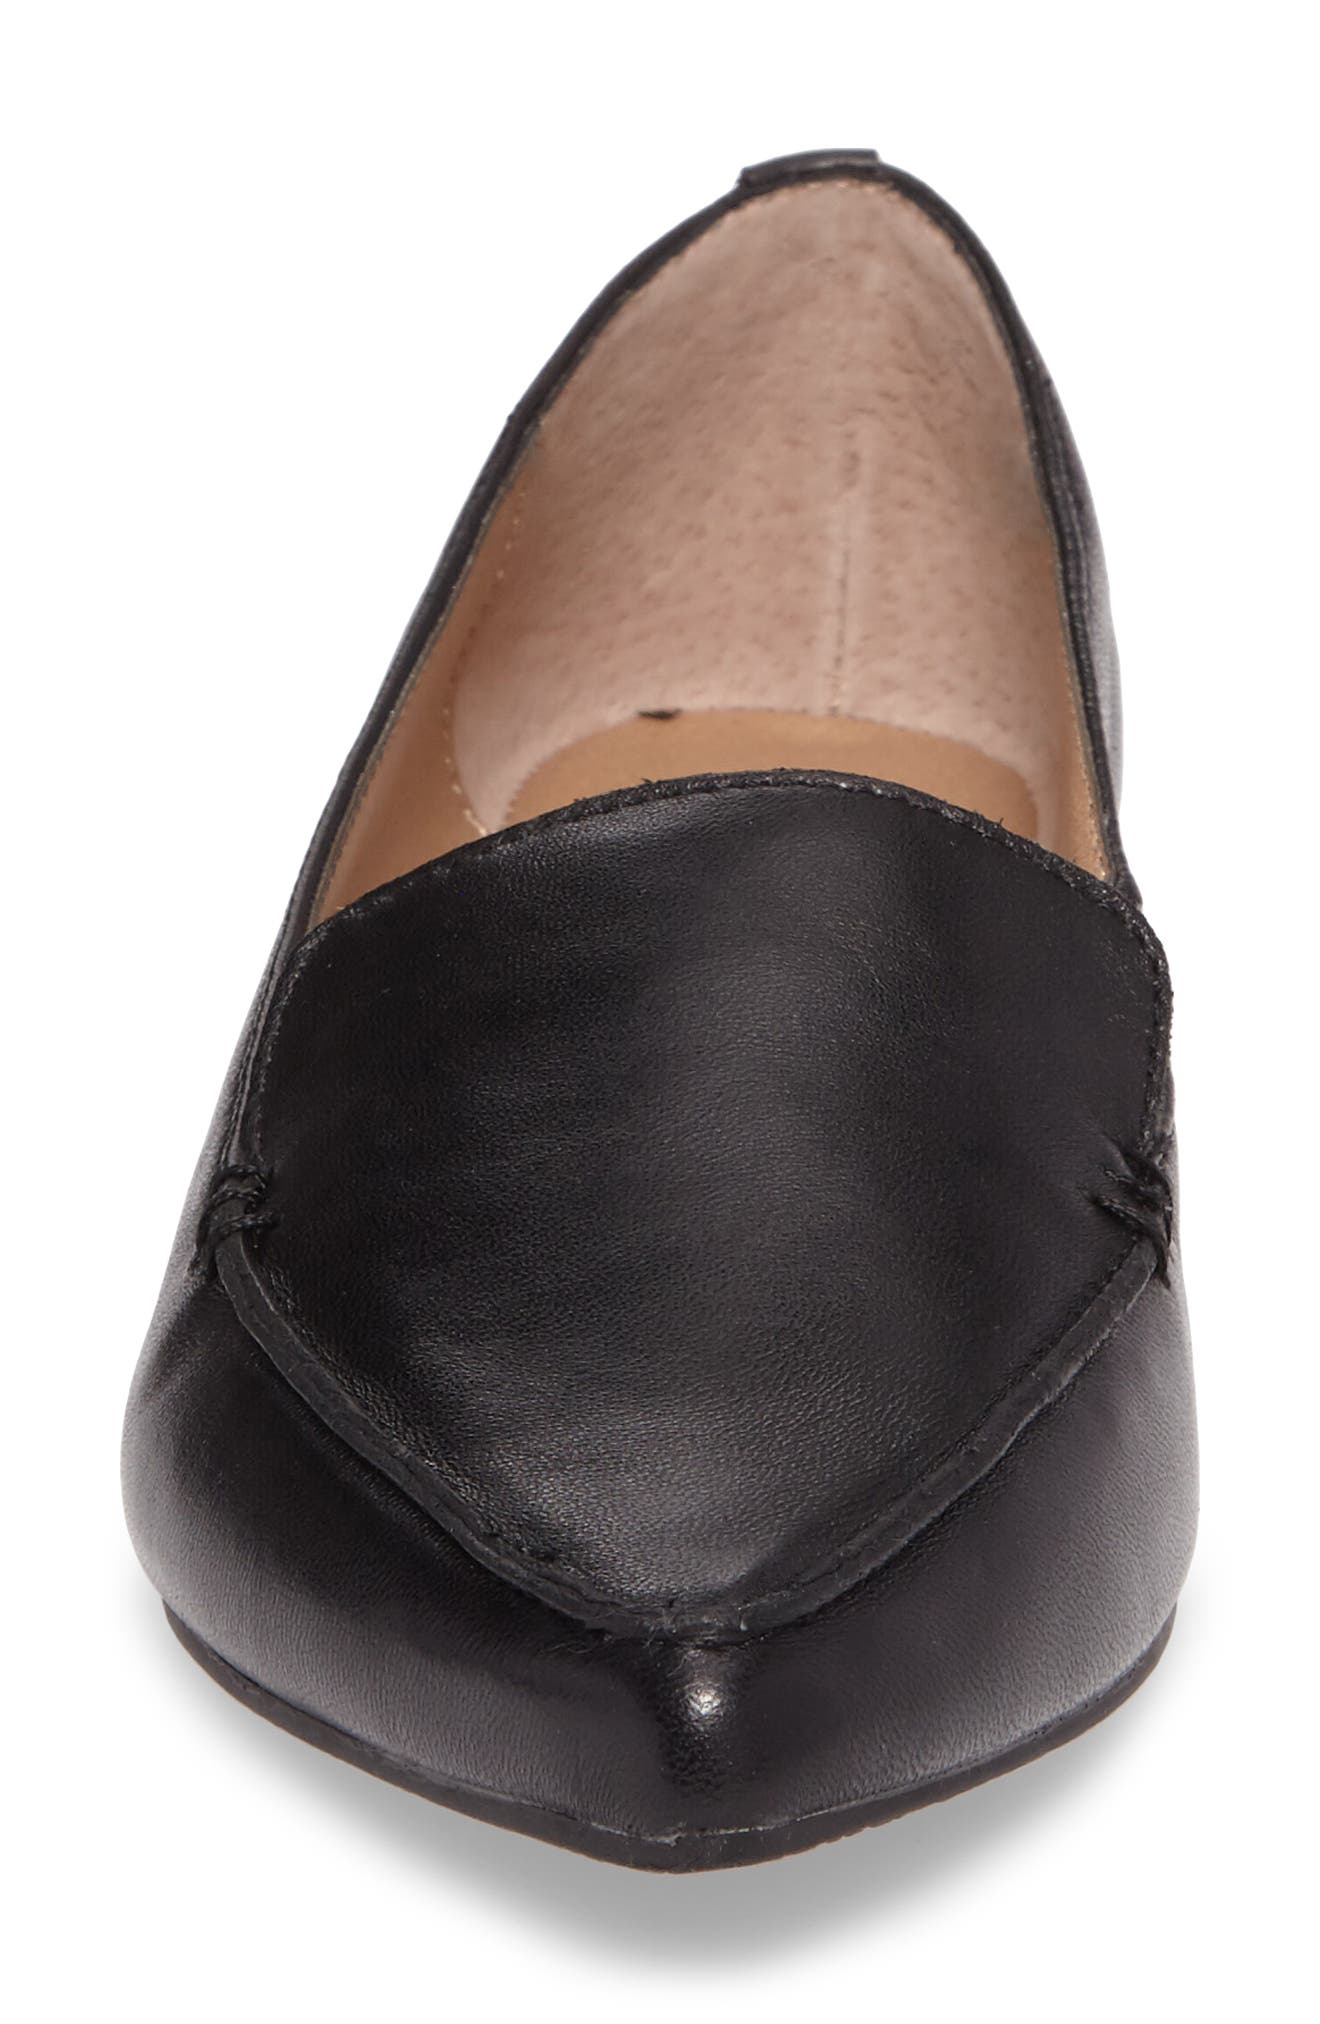 Feather Loafer Flat,                             Alternate thumbnail 4, color,                             BLACK LEATHER